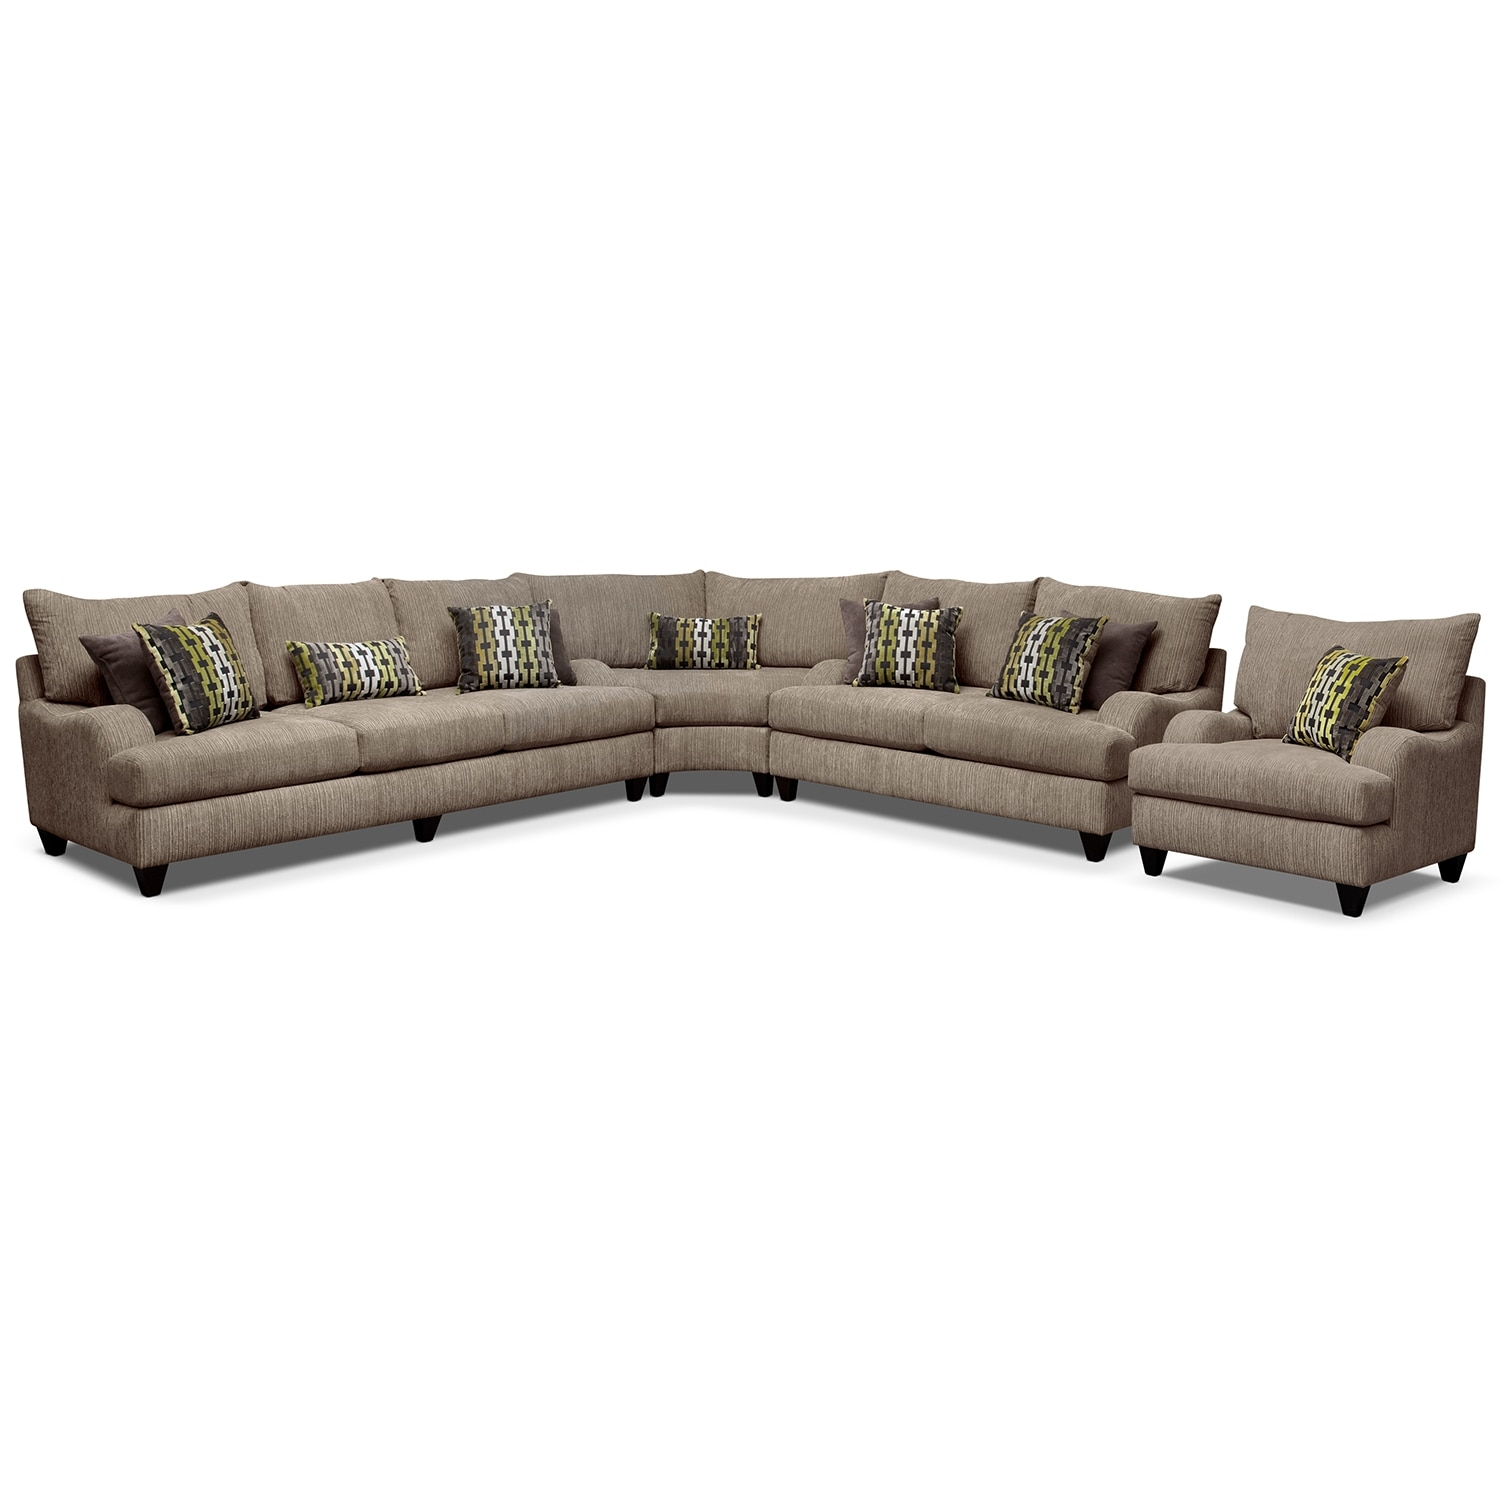 Living Room Furniture - Santa Monica II 3 Pc. Sectional and Chair